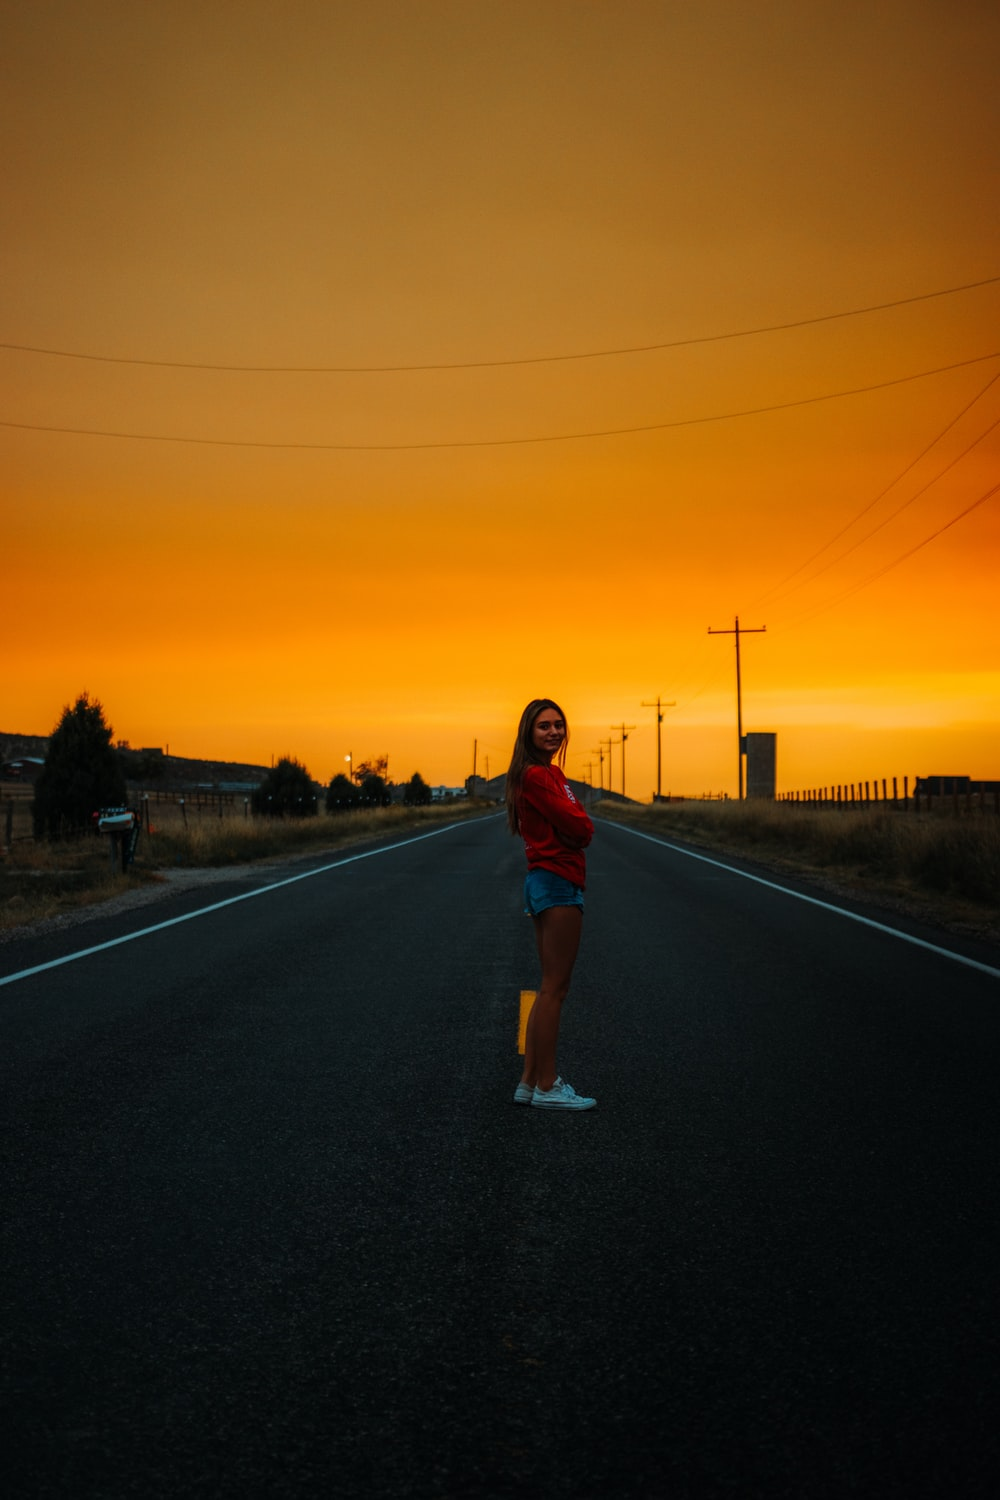 woman in red and blue plaid shirt standing on road during sunset